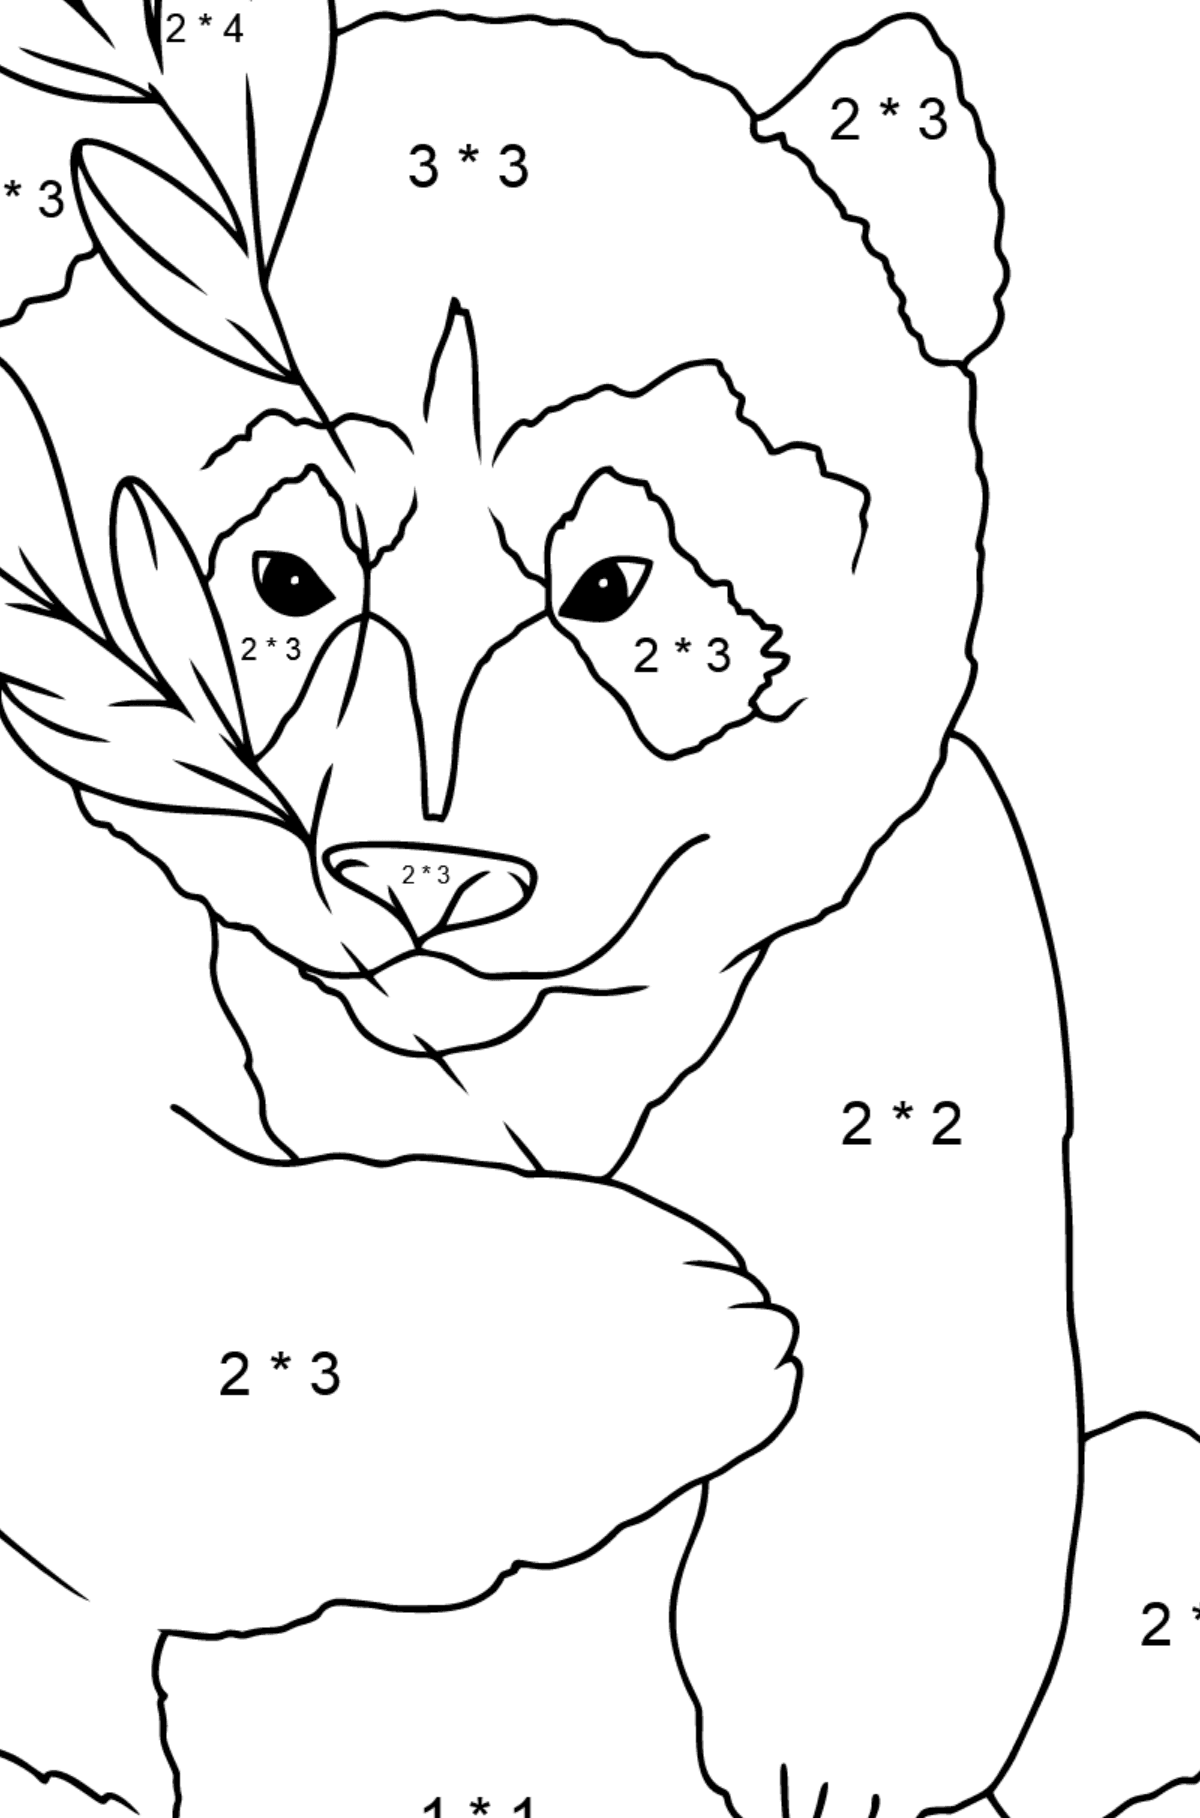 Coloring Page - A Panda is Hugging Bamboo Leaves - Math Coloring - Multiplication for Kids